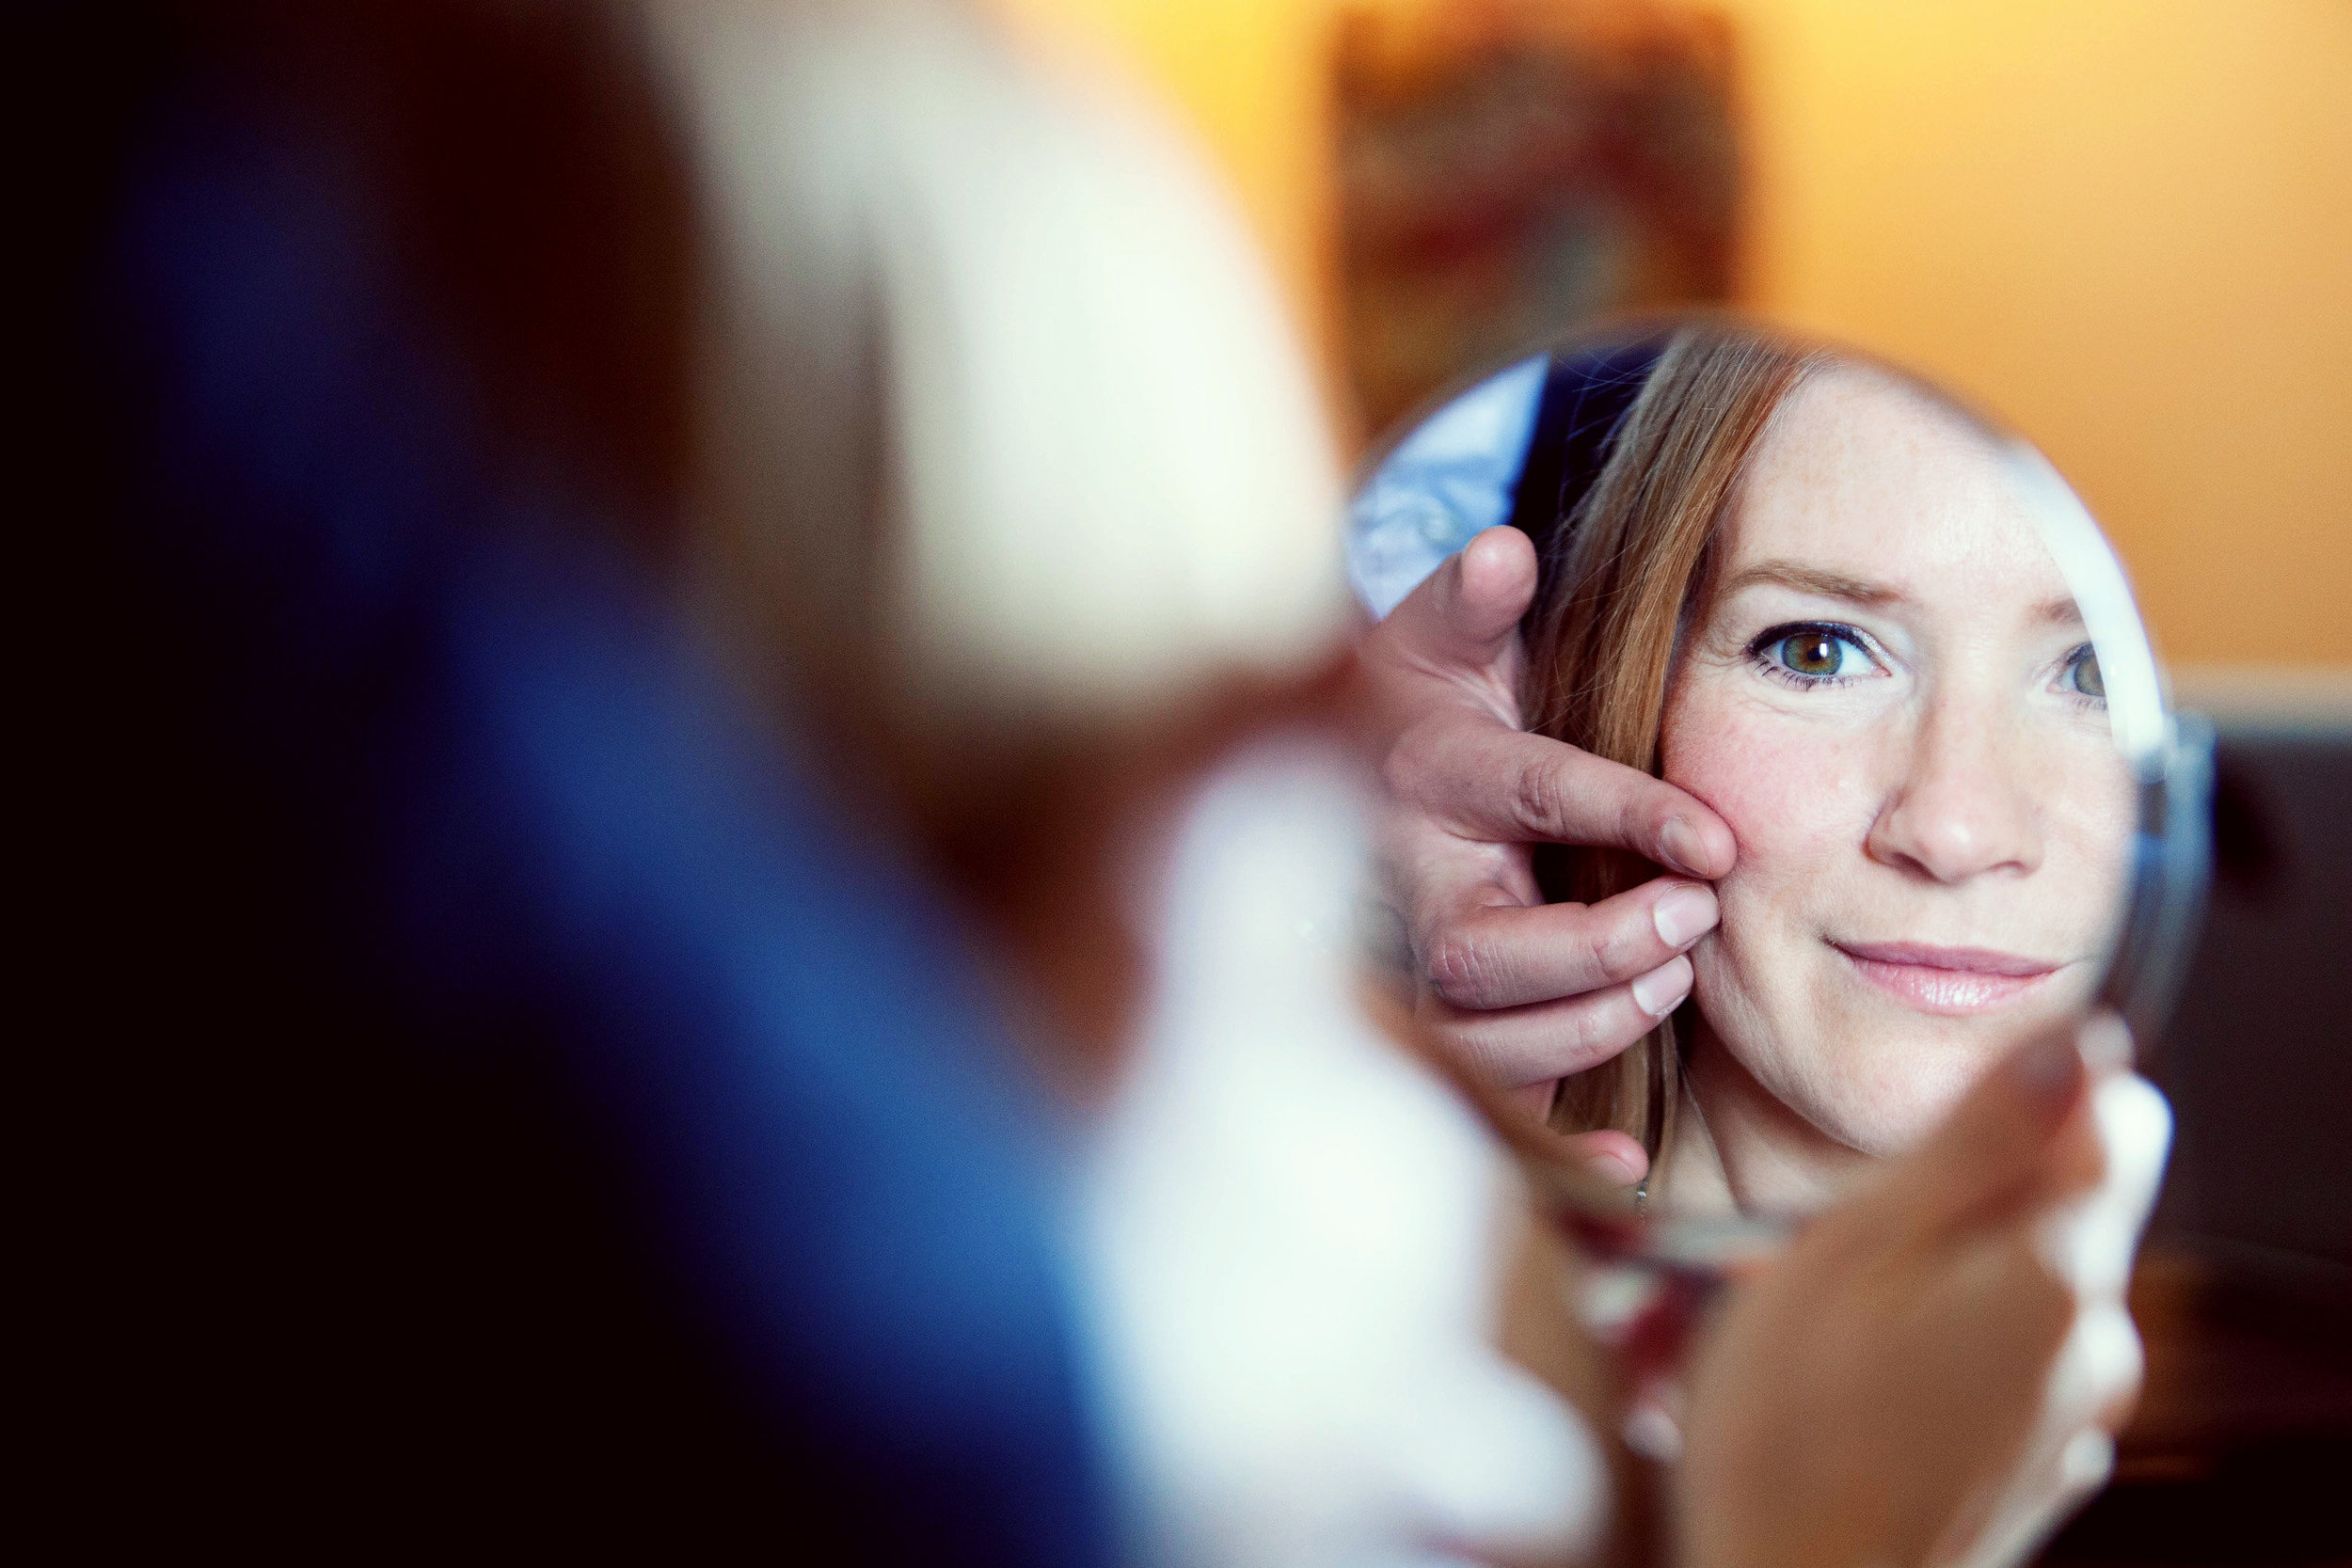 FACE - Treatments can be tailored to each need to create a bespoke plan for you. The options are wide and vast allowing us to plan the ideal treatments for you, what do you want to improve?